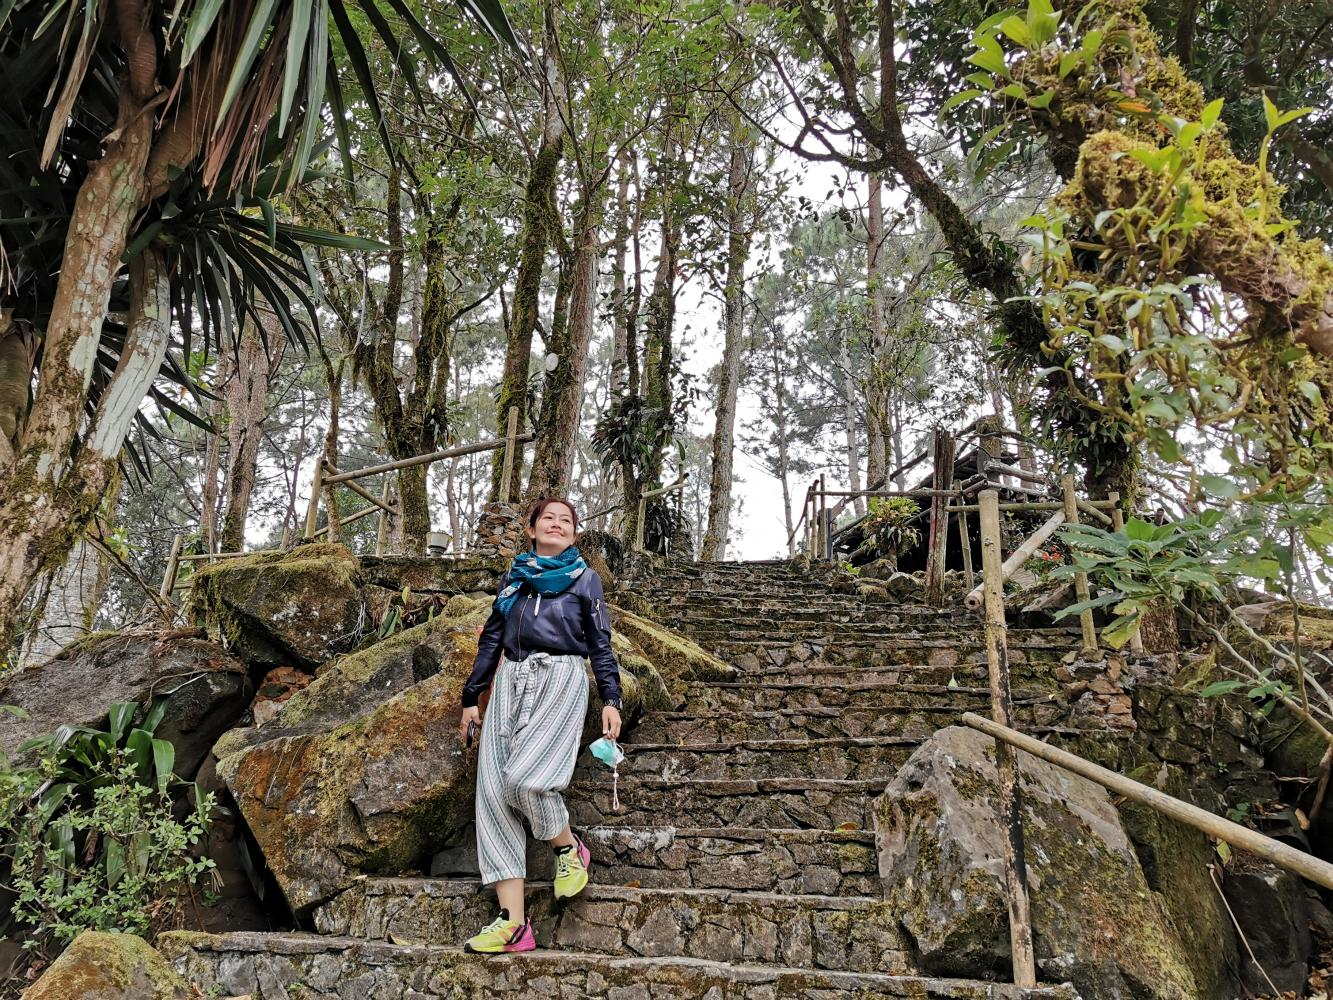 A tourist enjoys the scenic view in Mae Fah Luang Arboretum in Chiang Rai.(Photo: Pongpet Mekloy)